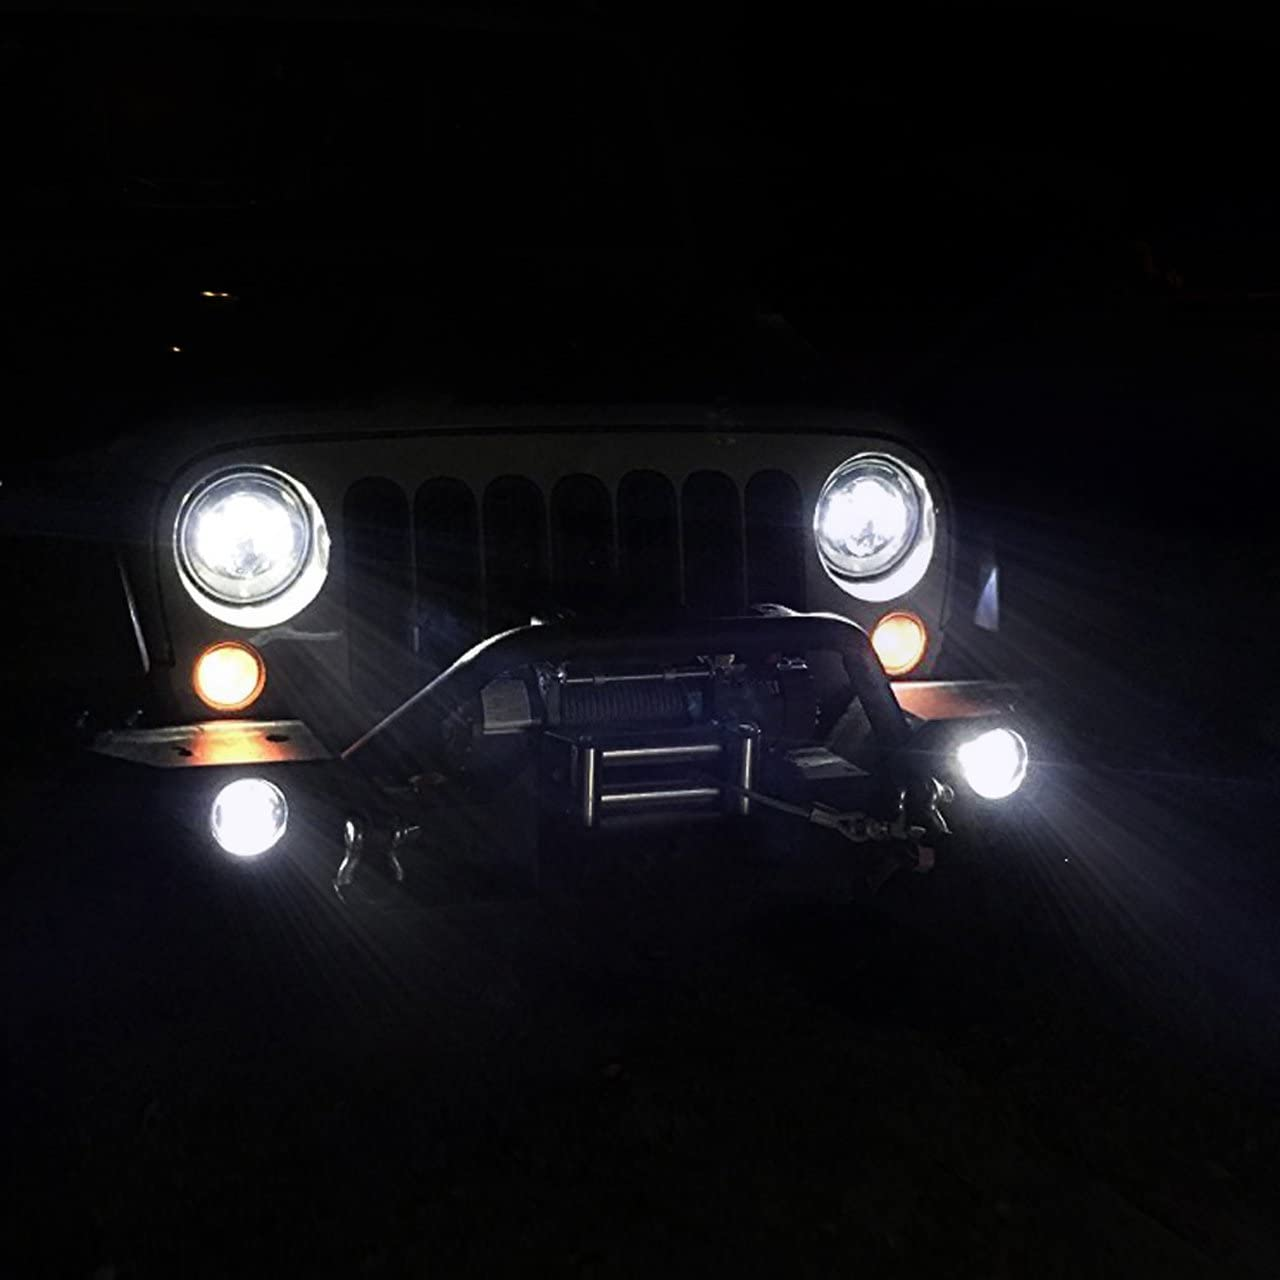 DOT Approved 7 Inch Projector Round LED Headlight High Low Beam with 4 inch LED Fog Lights for Jeep Wrangler Unlimited JK LJ TJ 4 door 2 Door Reedom Edition Rubicon Sahara Willys Wheeler 6Bulbs